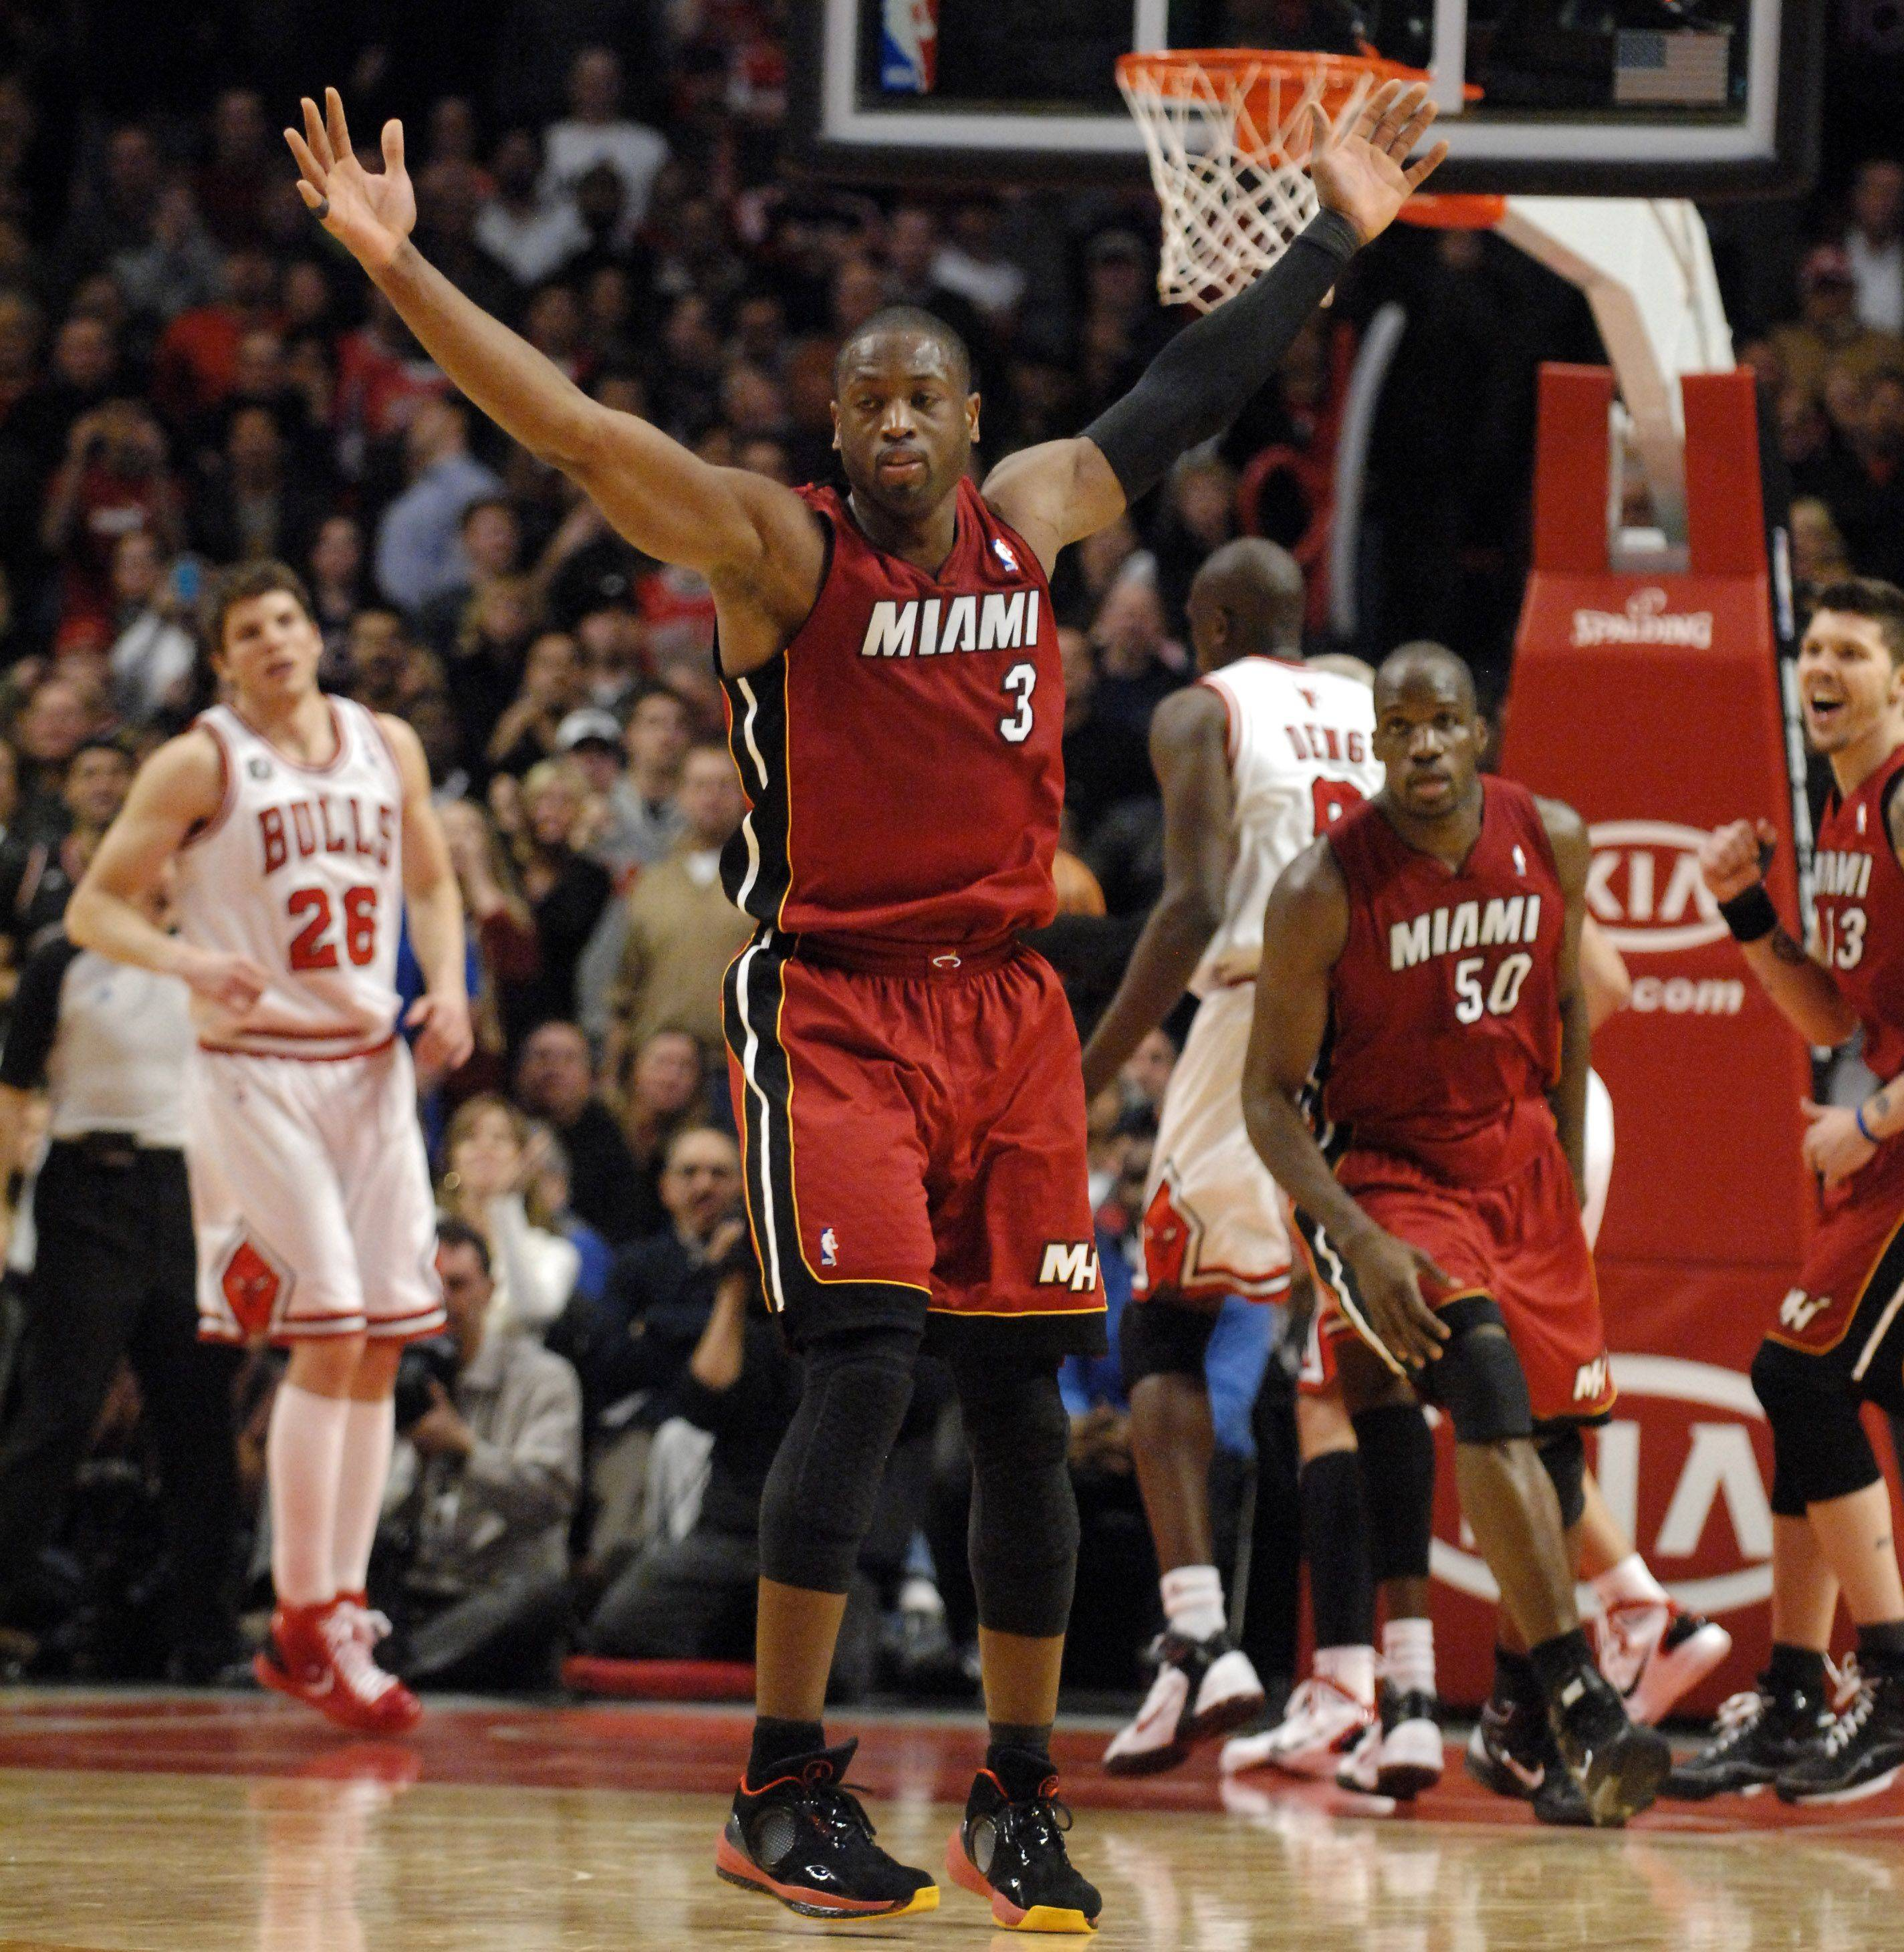 Miami Heat shooting guard Dwyane Wade throws up his hands after a late 3-pointer during Saturday's game at the United Center in Chicago.